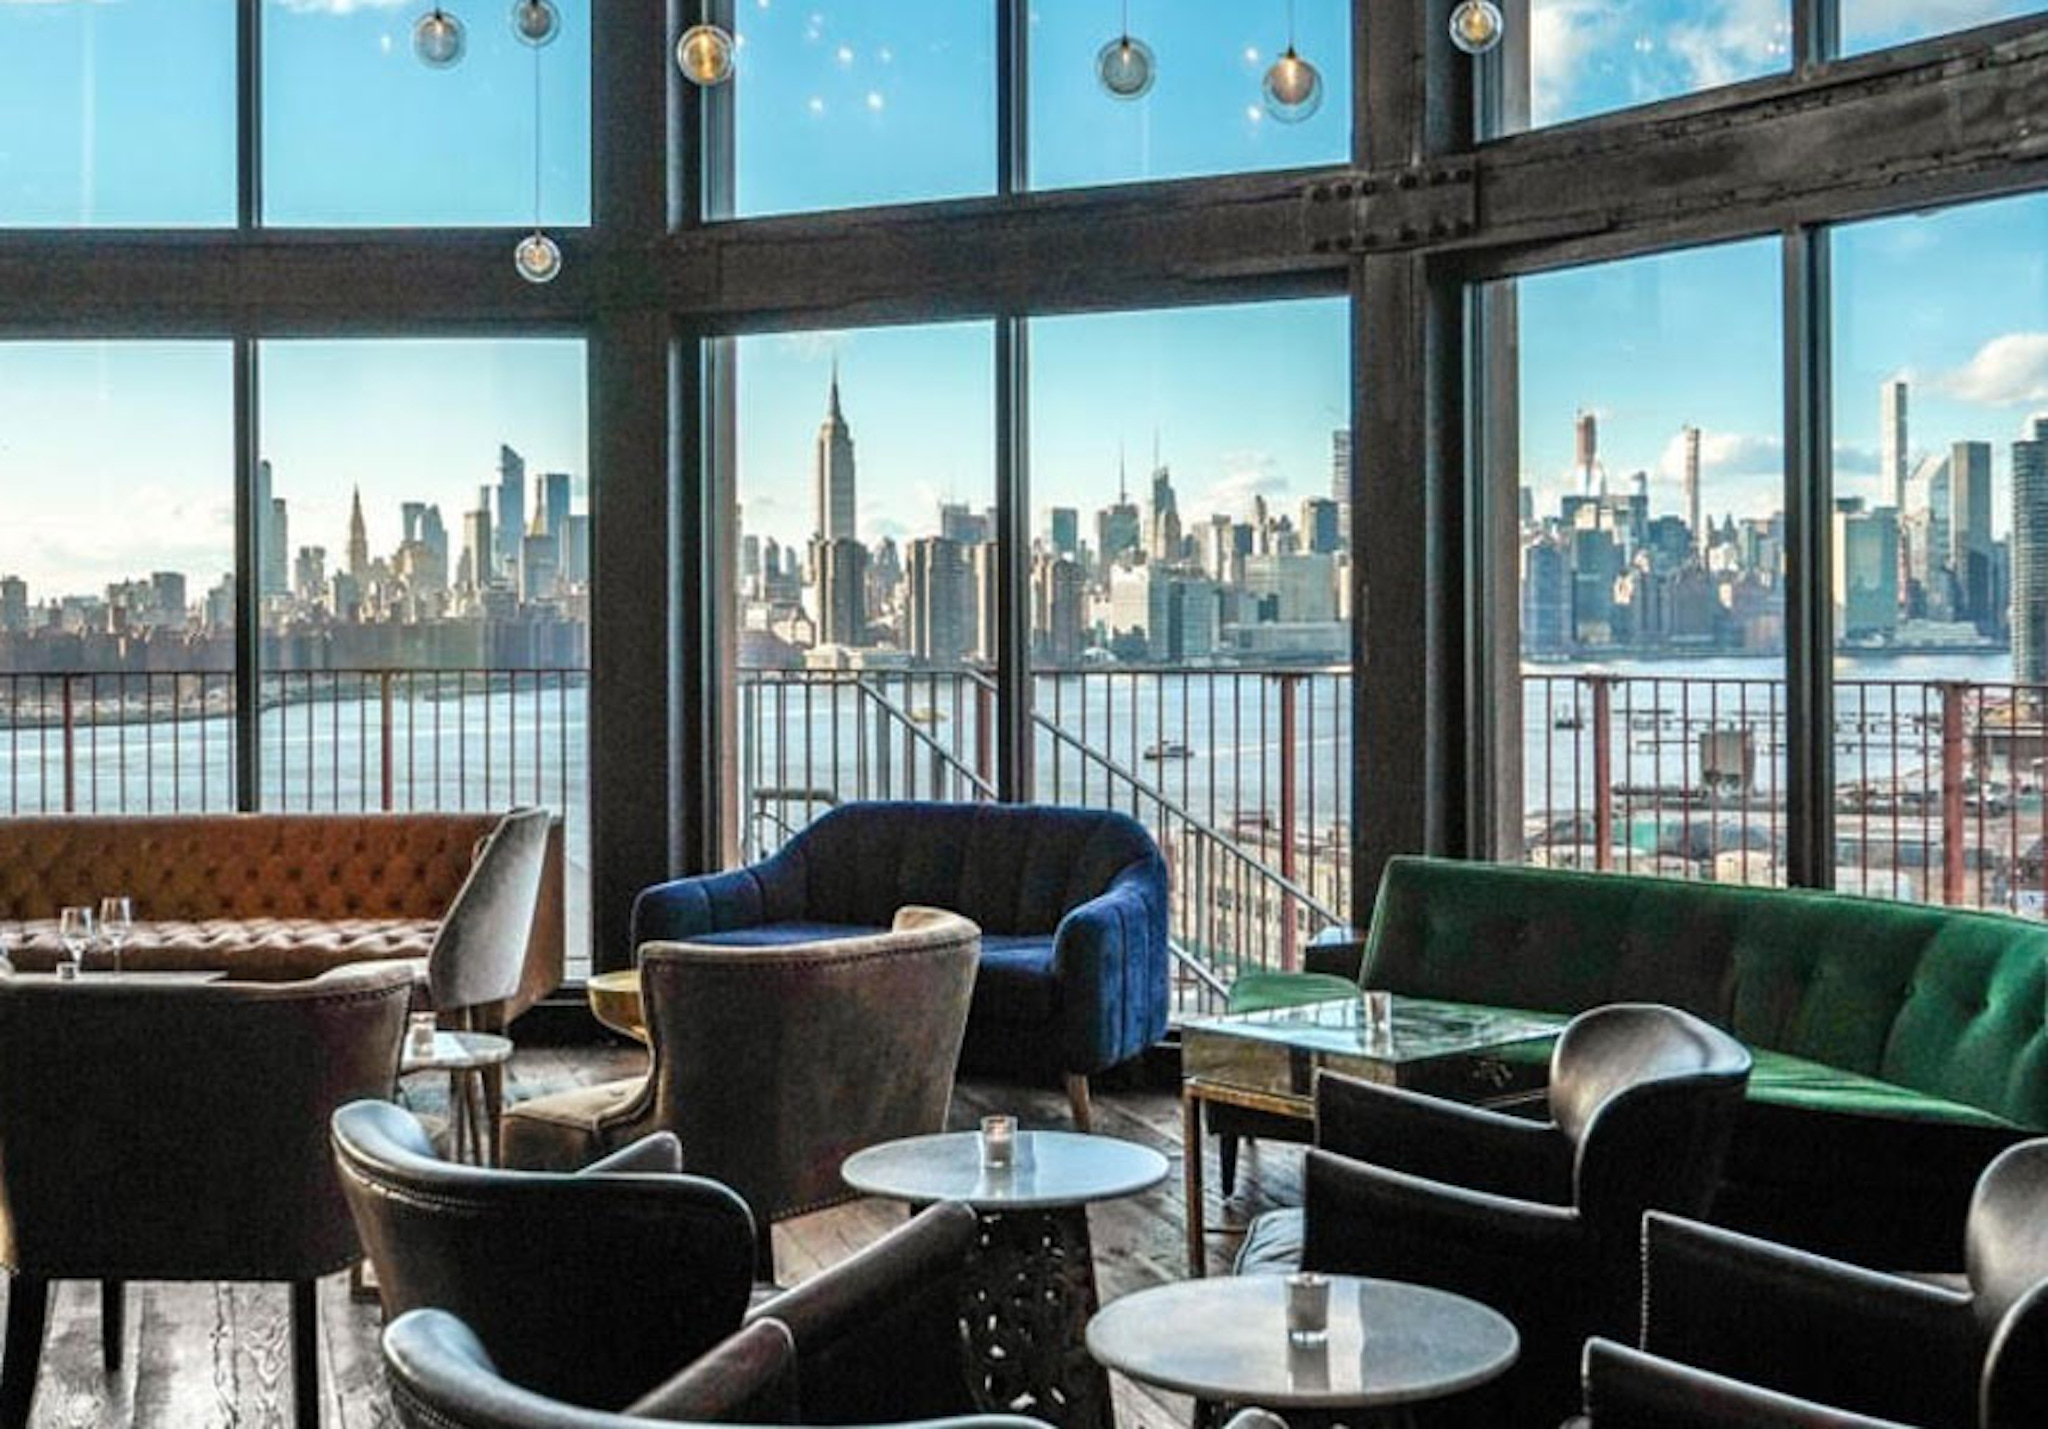 The Water Tower at the Williamsburg Hotel includes a 360-degree view of New York